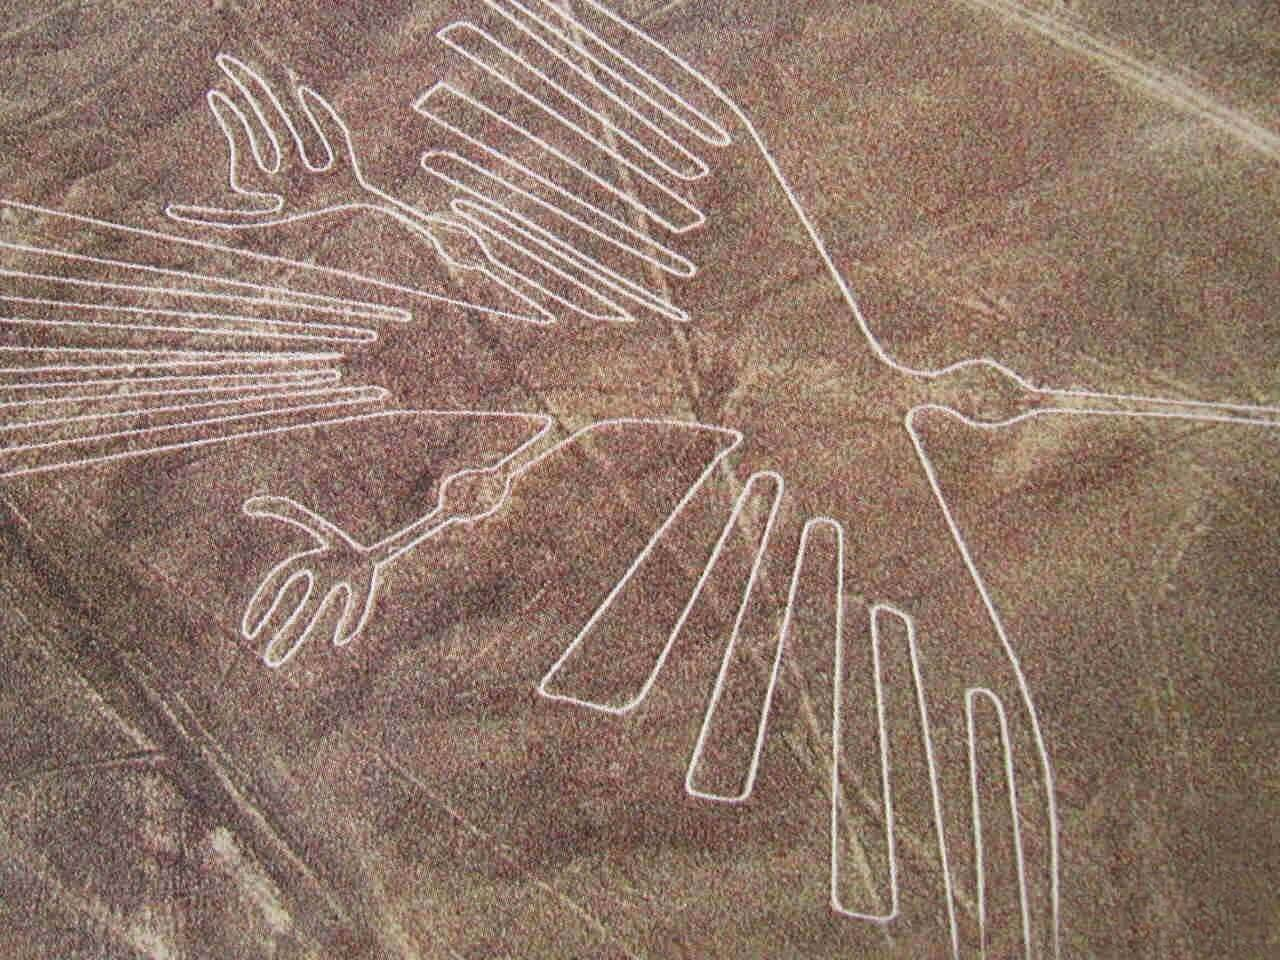 Ancient peoples drew on the Earth drawings, visible only from a great height